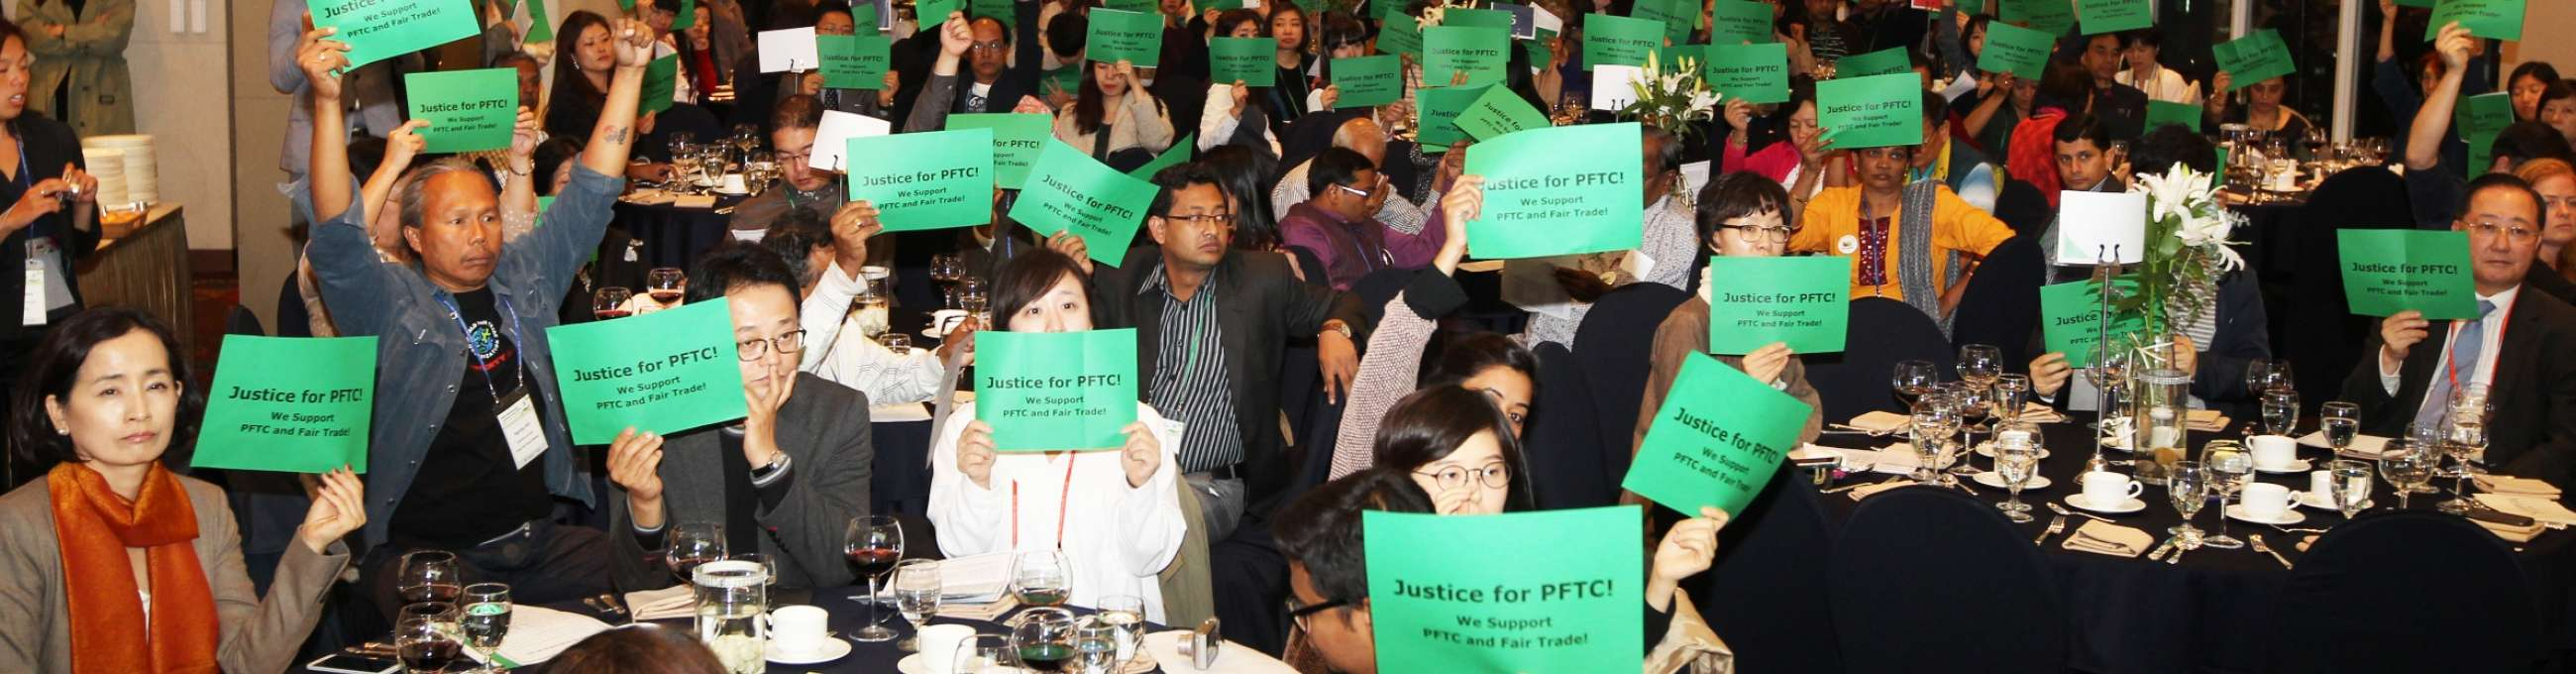 The joint declaration was signed by presidents of WFTO Asia and KFTO during the regional conference of WFTO Asian members in Seoul, Korea, in October.   Photo: PFTC